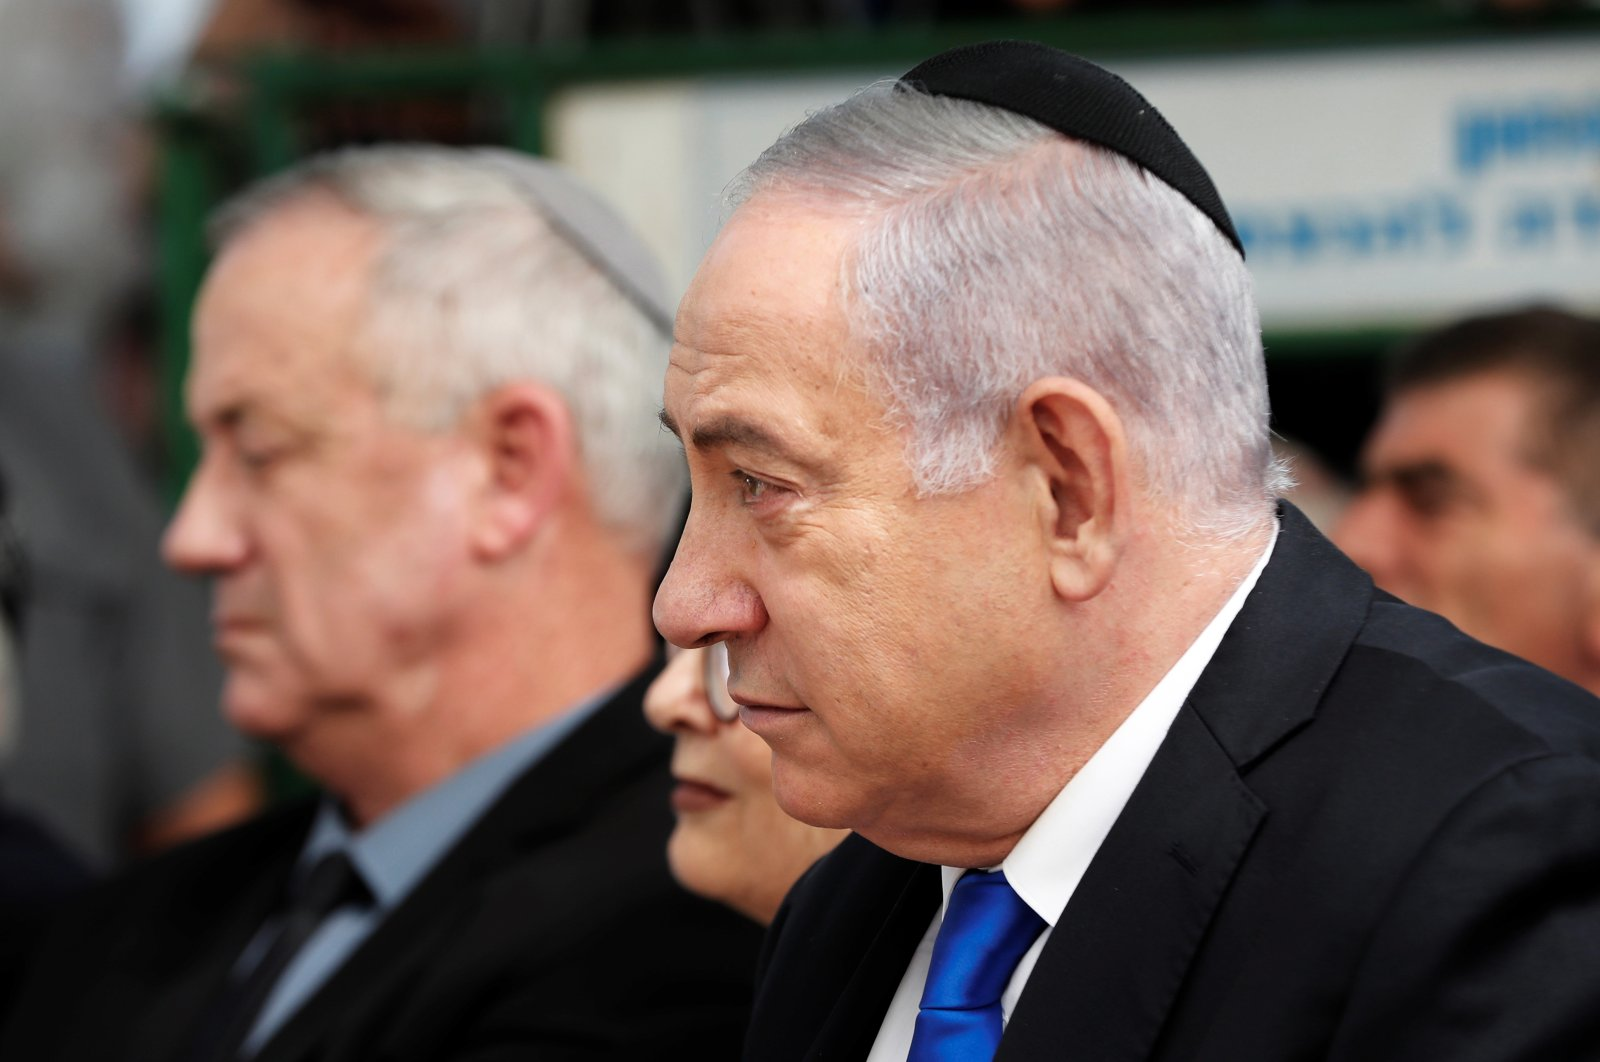 Israeli Prime Minister Benjamin Netanyahu looks on as he sits next to Benny Gantz, leader of Blue and White party, during a memorial ceremony for late Israeli President Shimon Peres, at Mount Herzl in Jerusalem, Israel, Sep. 19, 2019. (Reuters Photo)